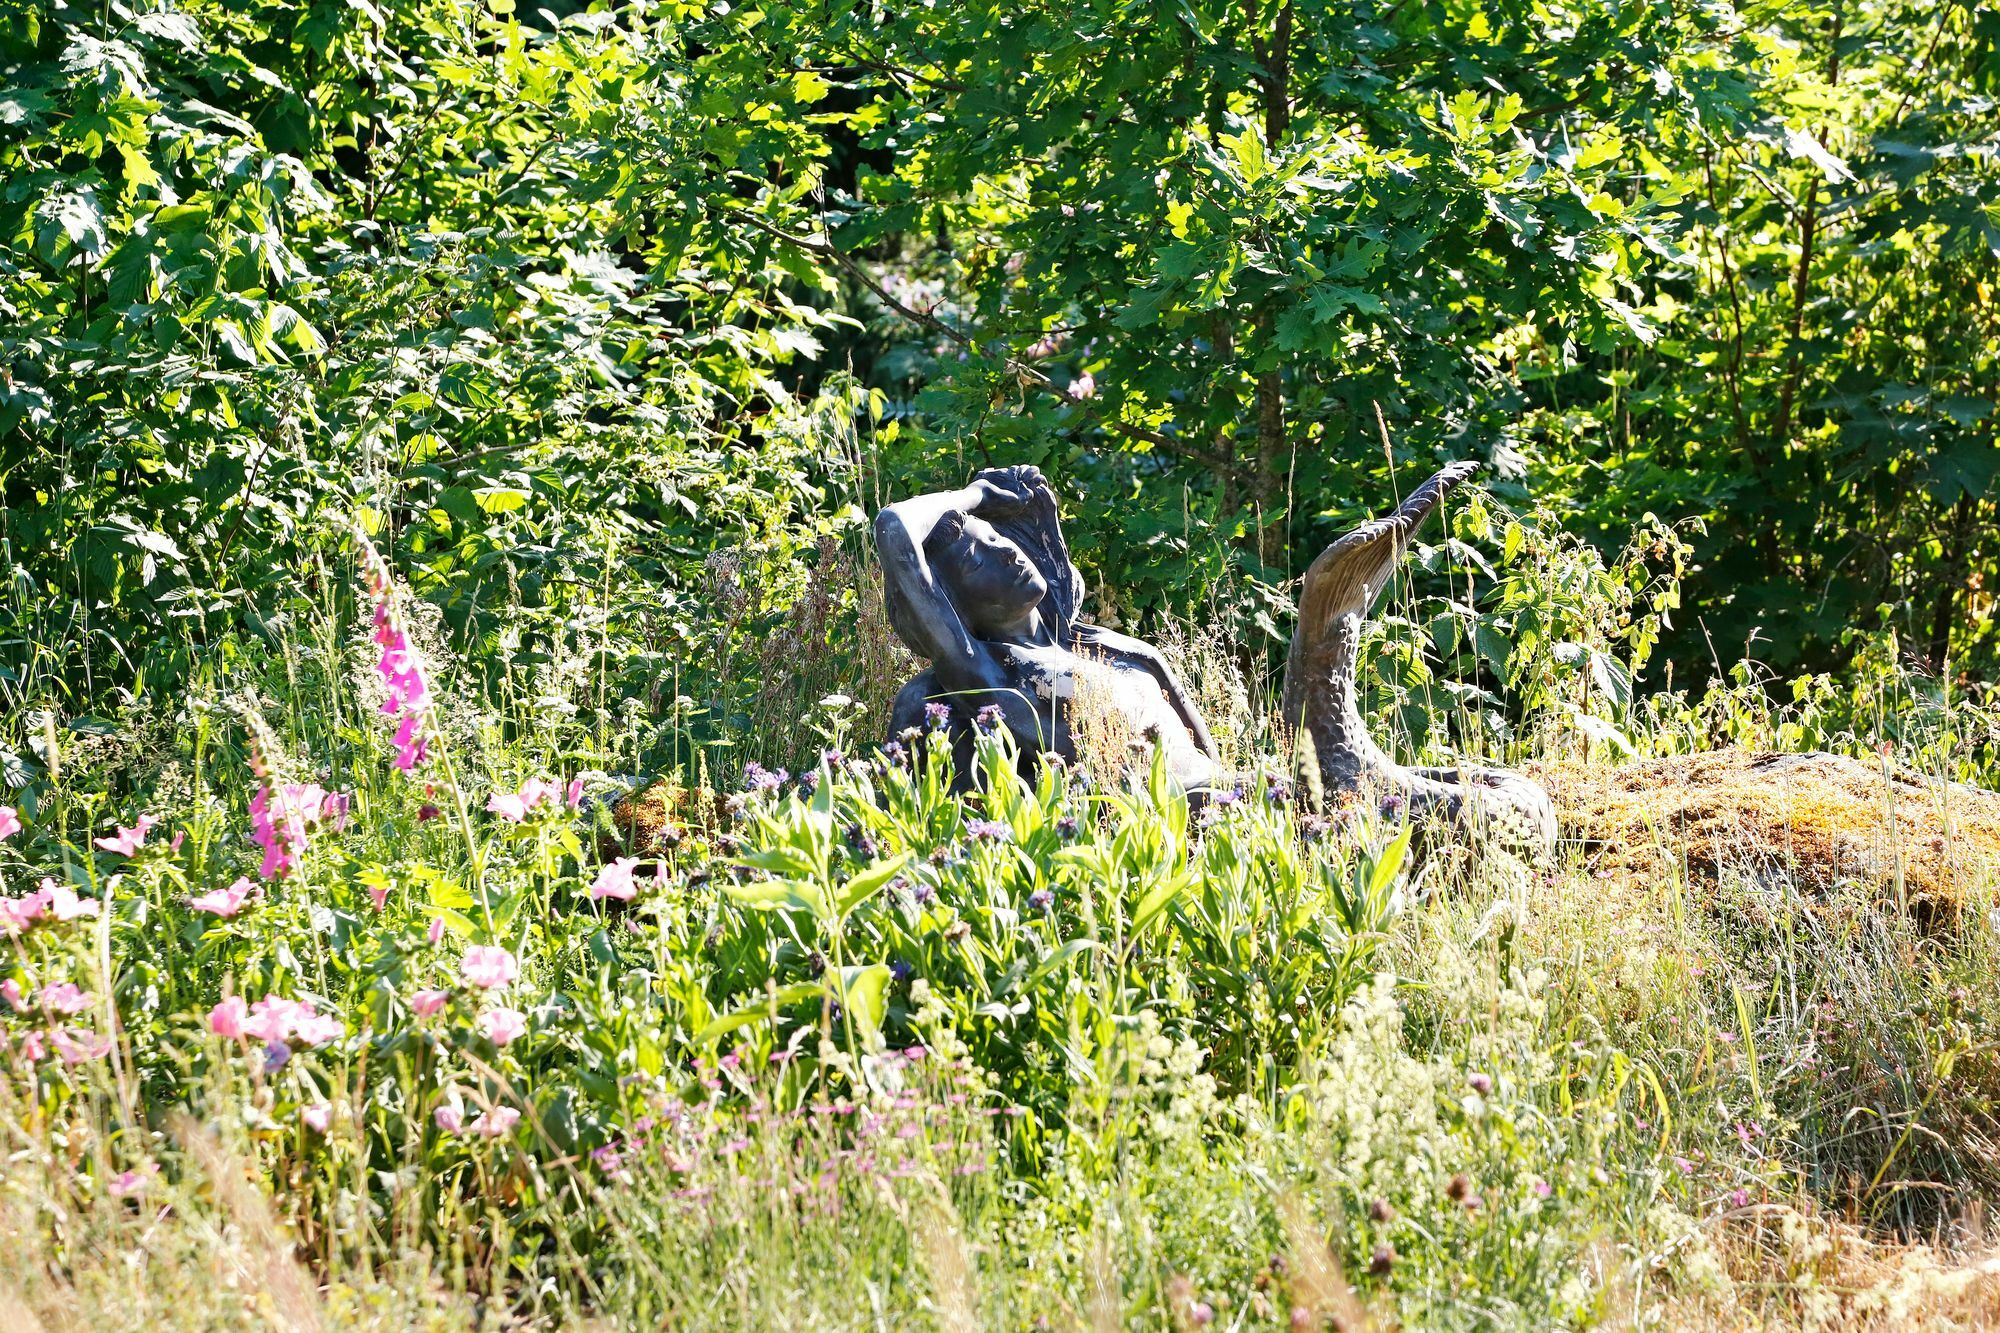 The art also fits into the old milieu, even on the edge of a flower meadow.